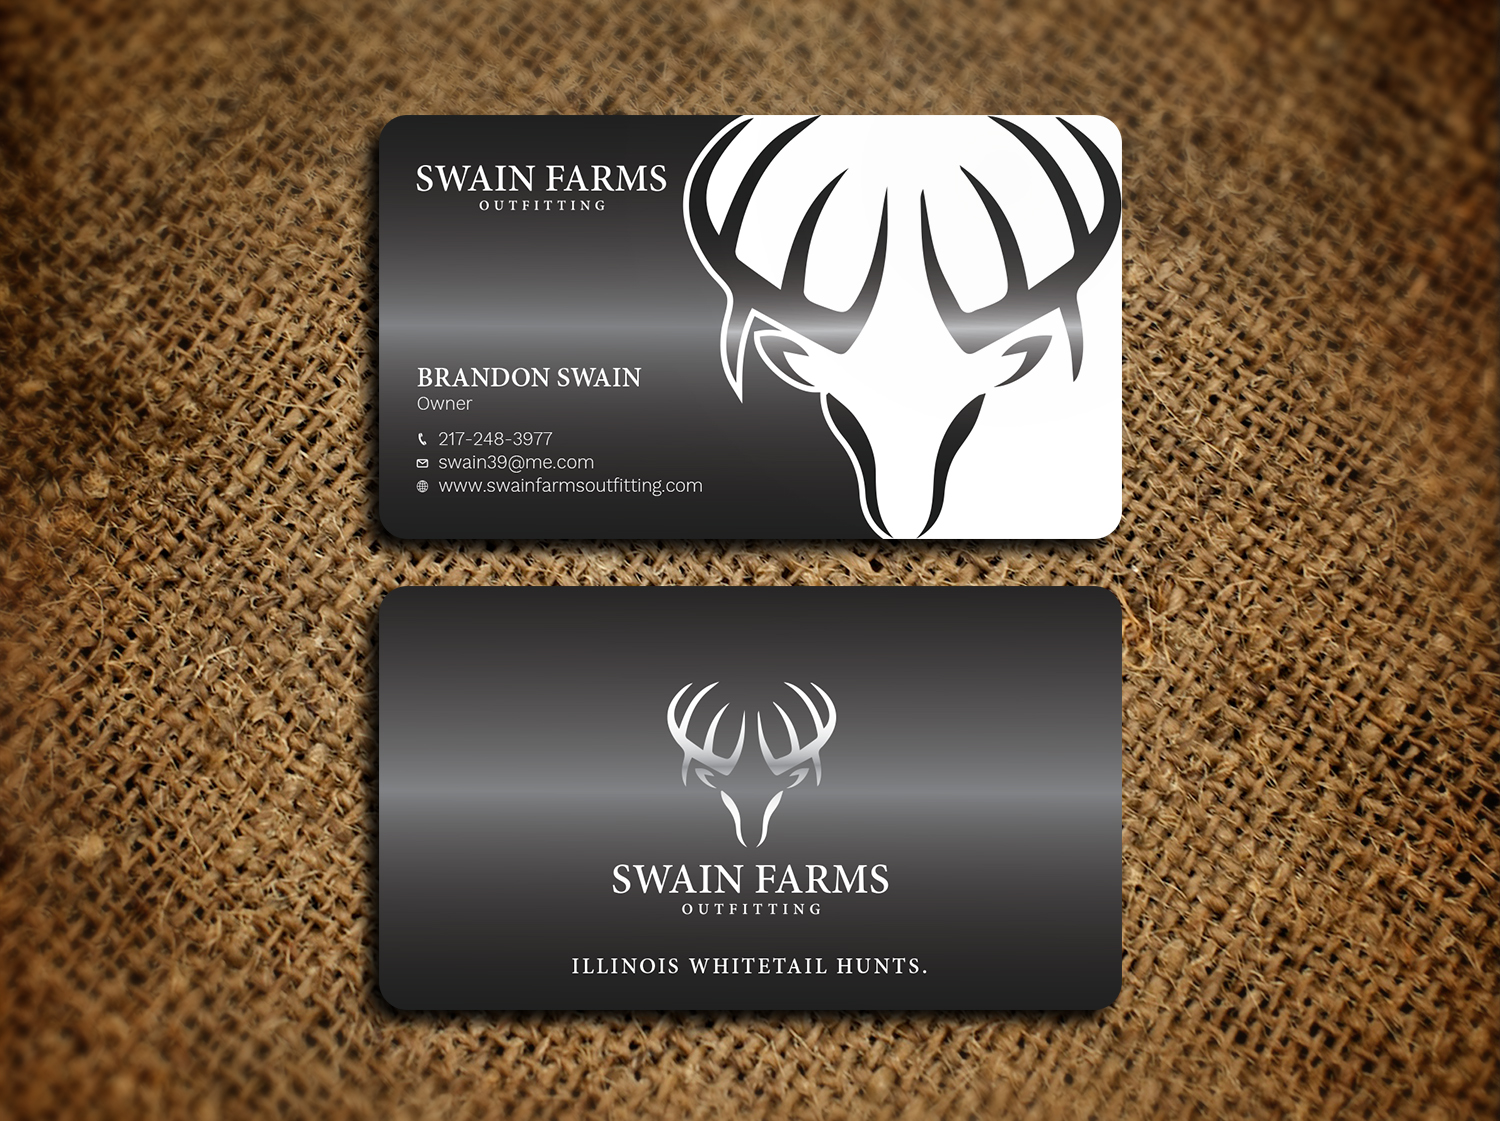 Modern professional hunting business card design for a company by business card design by avanger000 for this project design 17461186 colourmoves